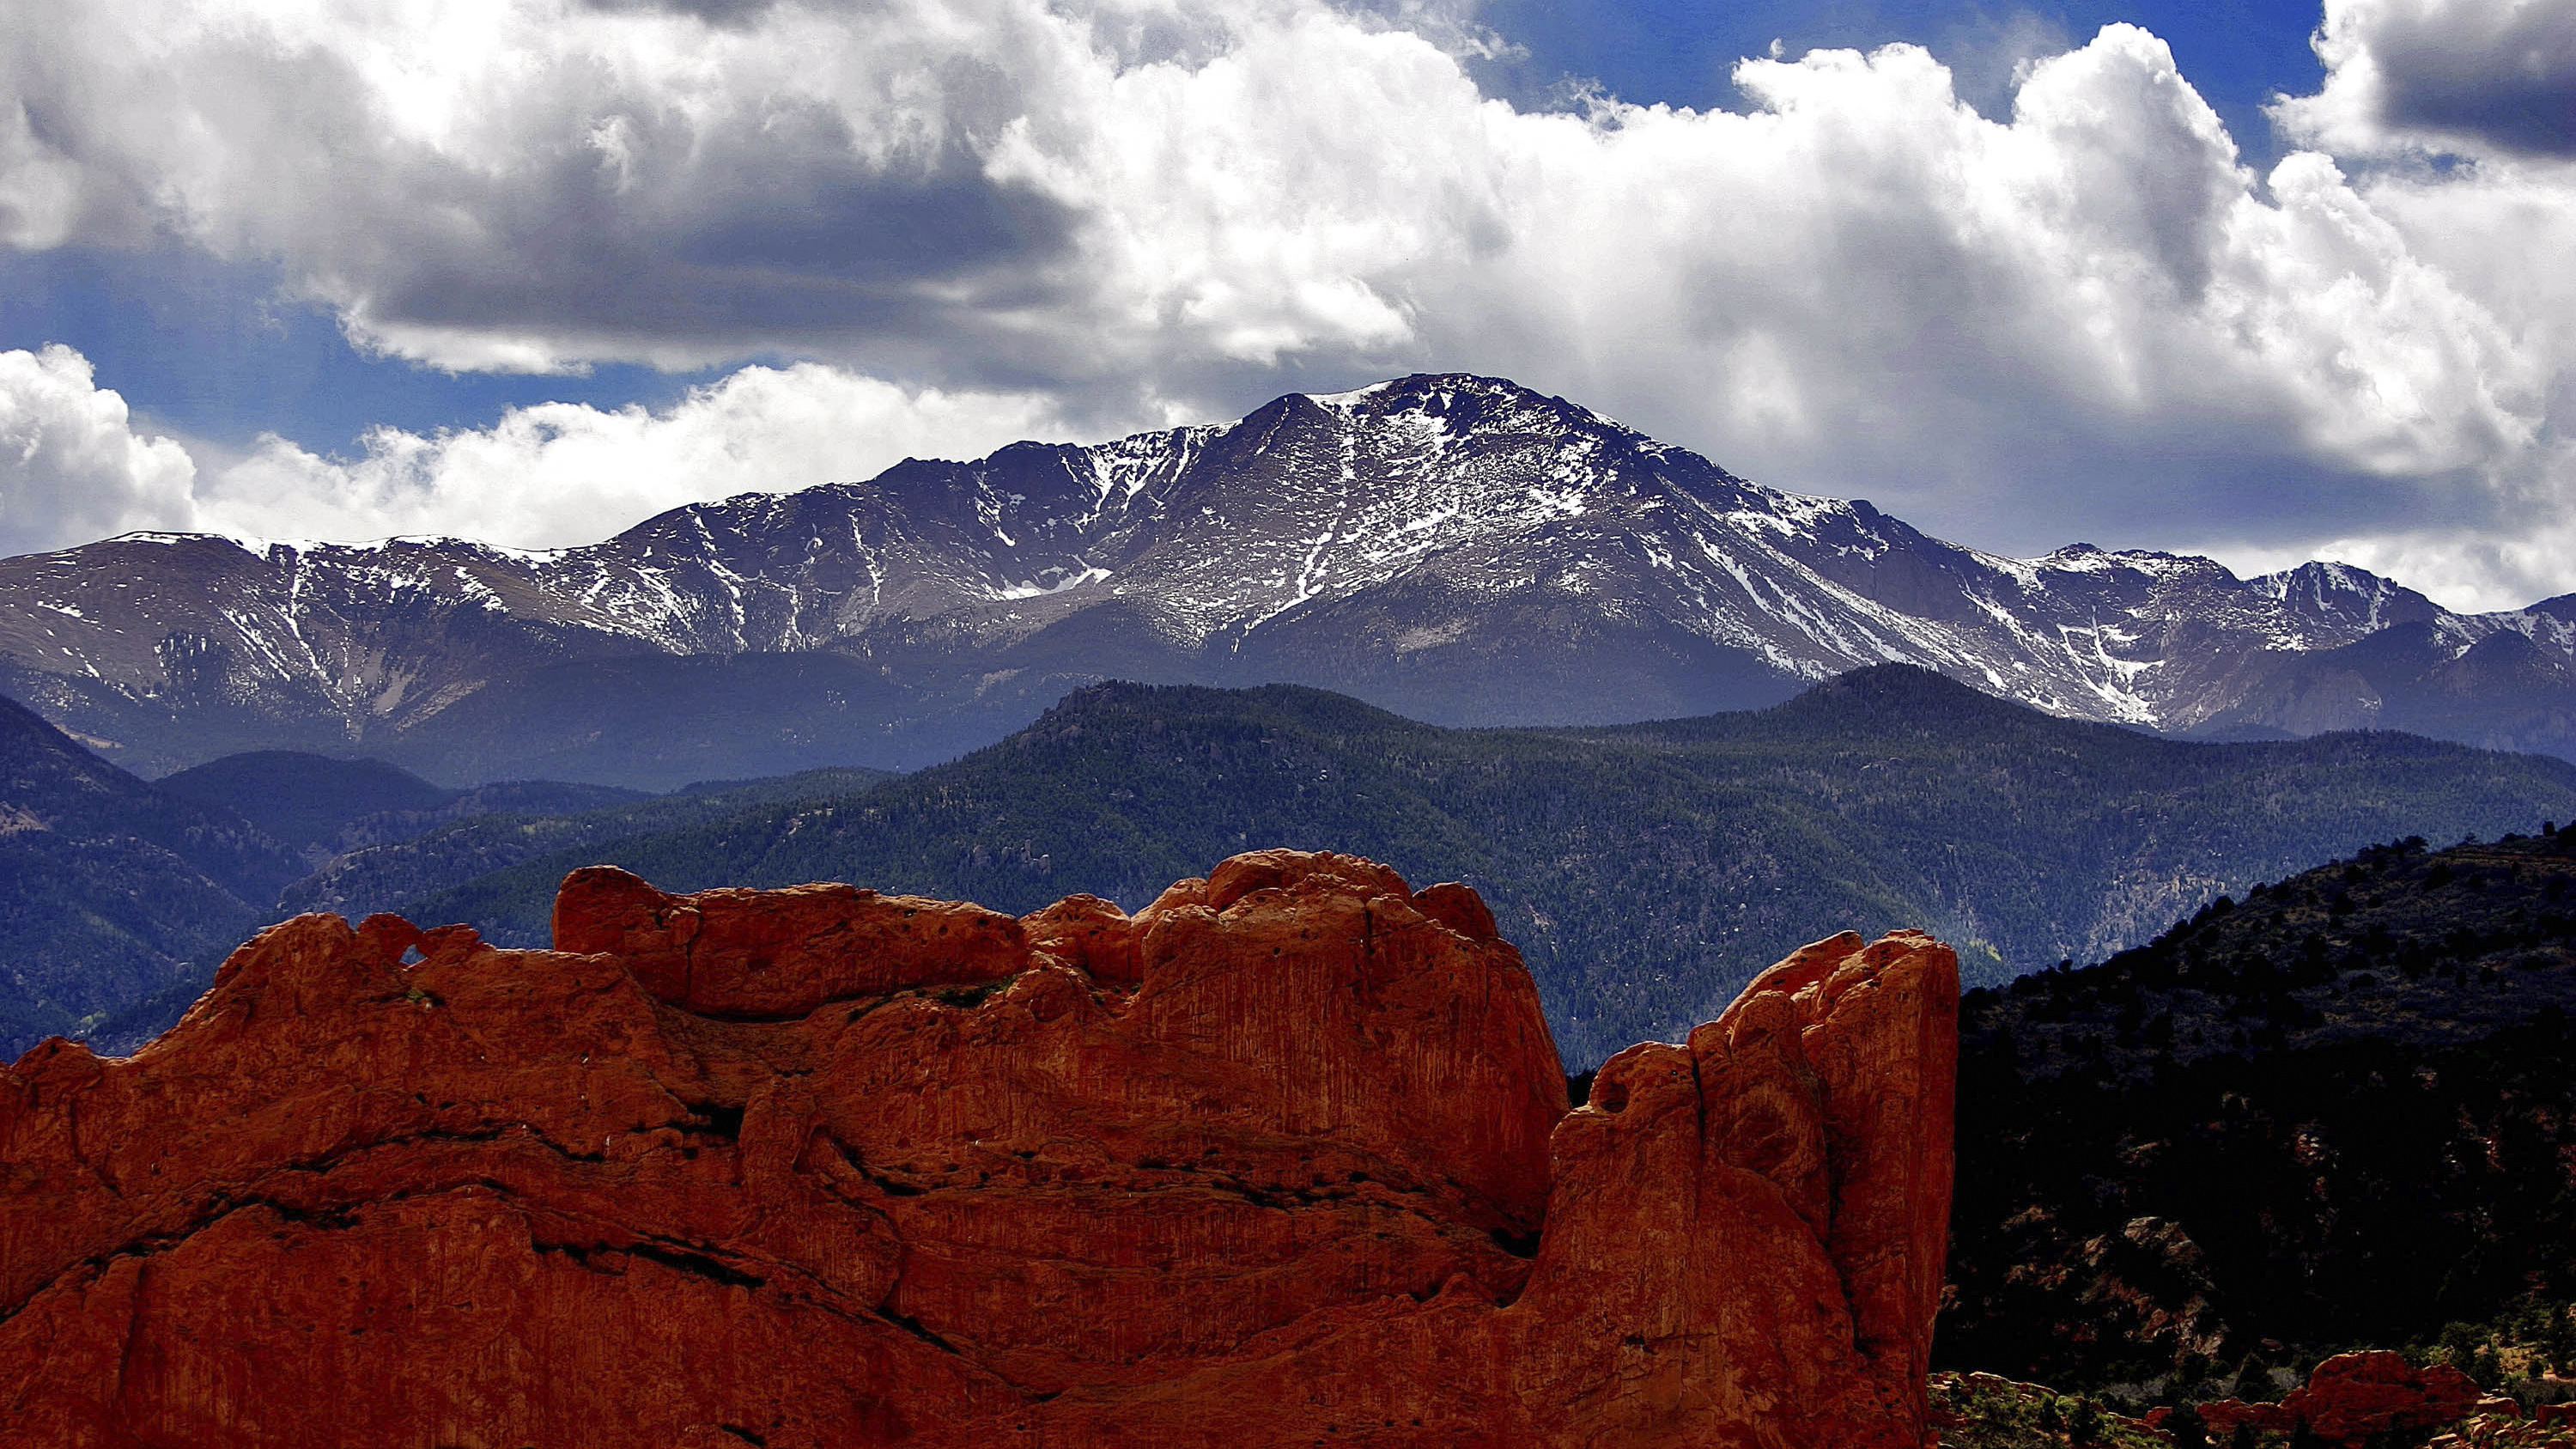 <p>The sun breaks through the clouds to highlight the summit of Pikes Peak as seen from the Garden of the Gods in Colorado Springs, Colo.</p>